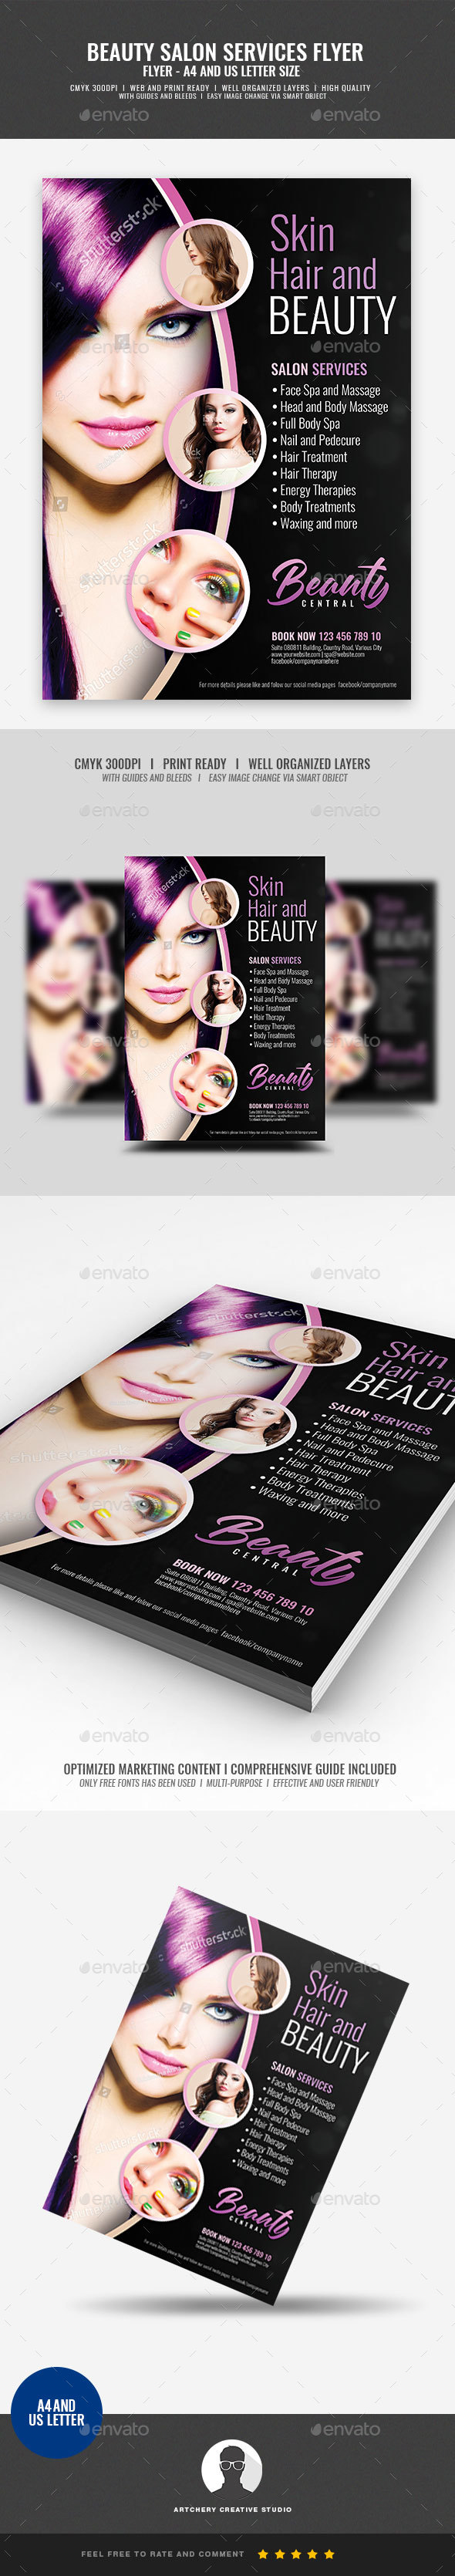 Hair and Makeup Center Flyer - Corporate Flyers